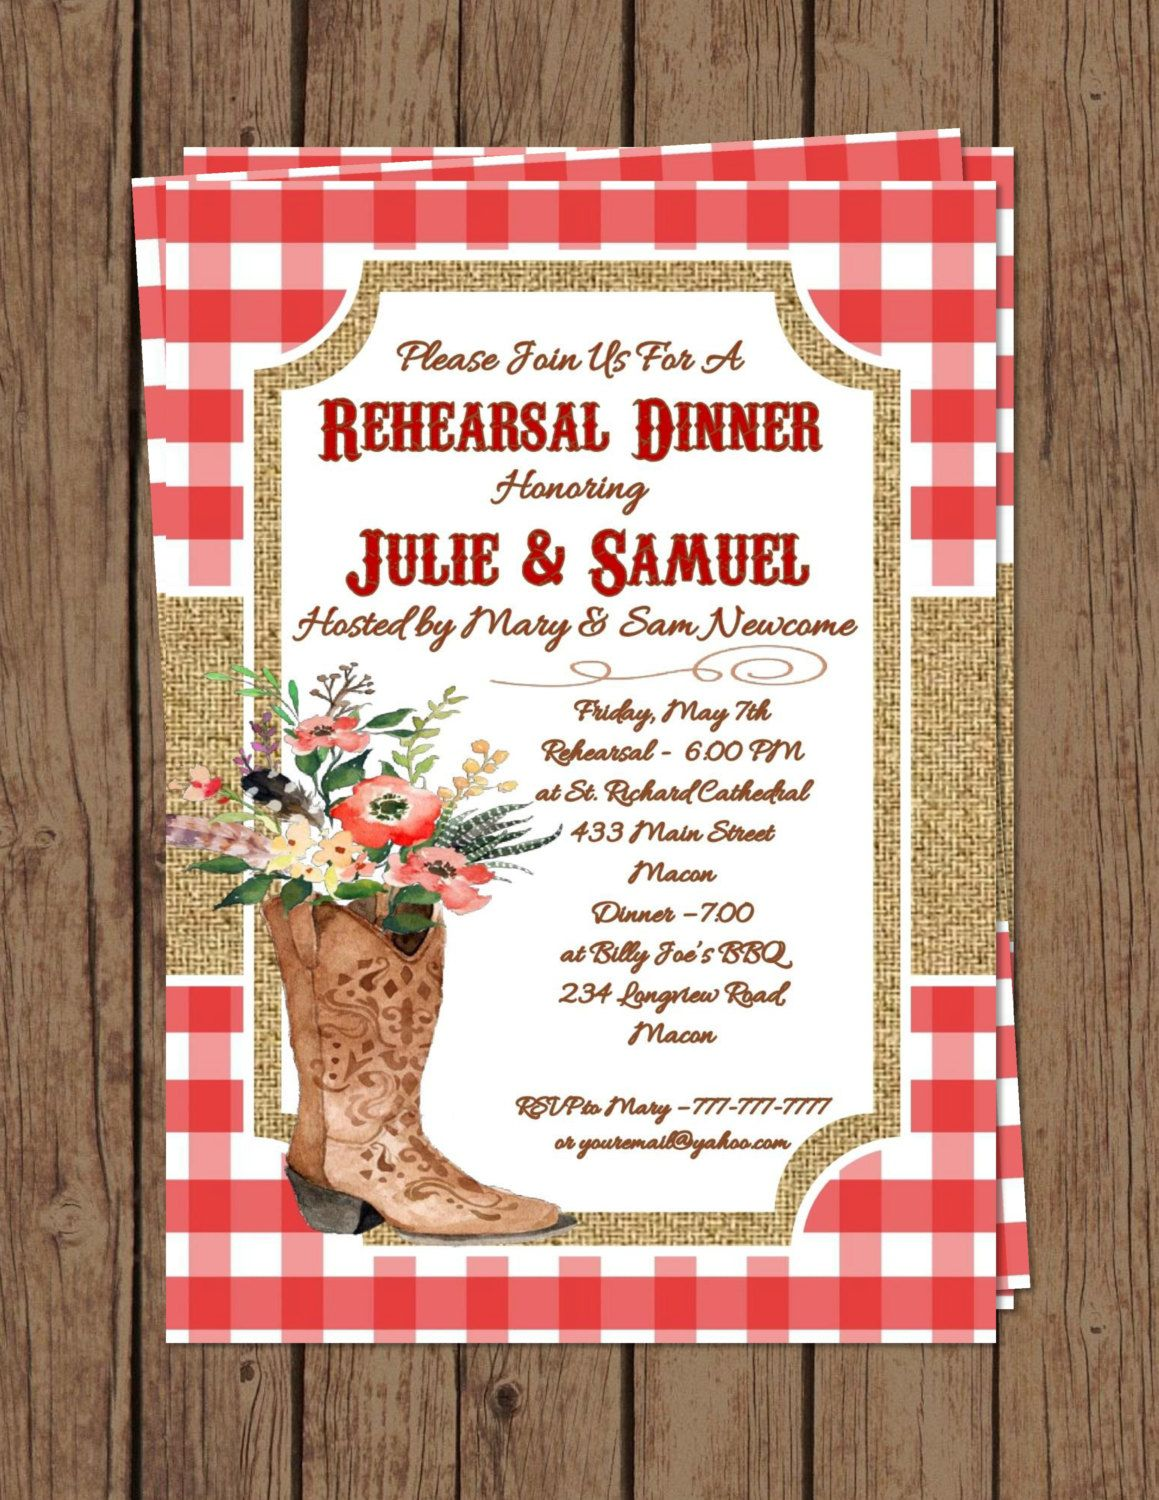 Rehearsal Dinner Western Theme | Bridesmaid BBQ Brunch | Cowboy ...